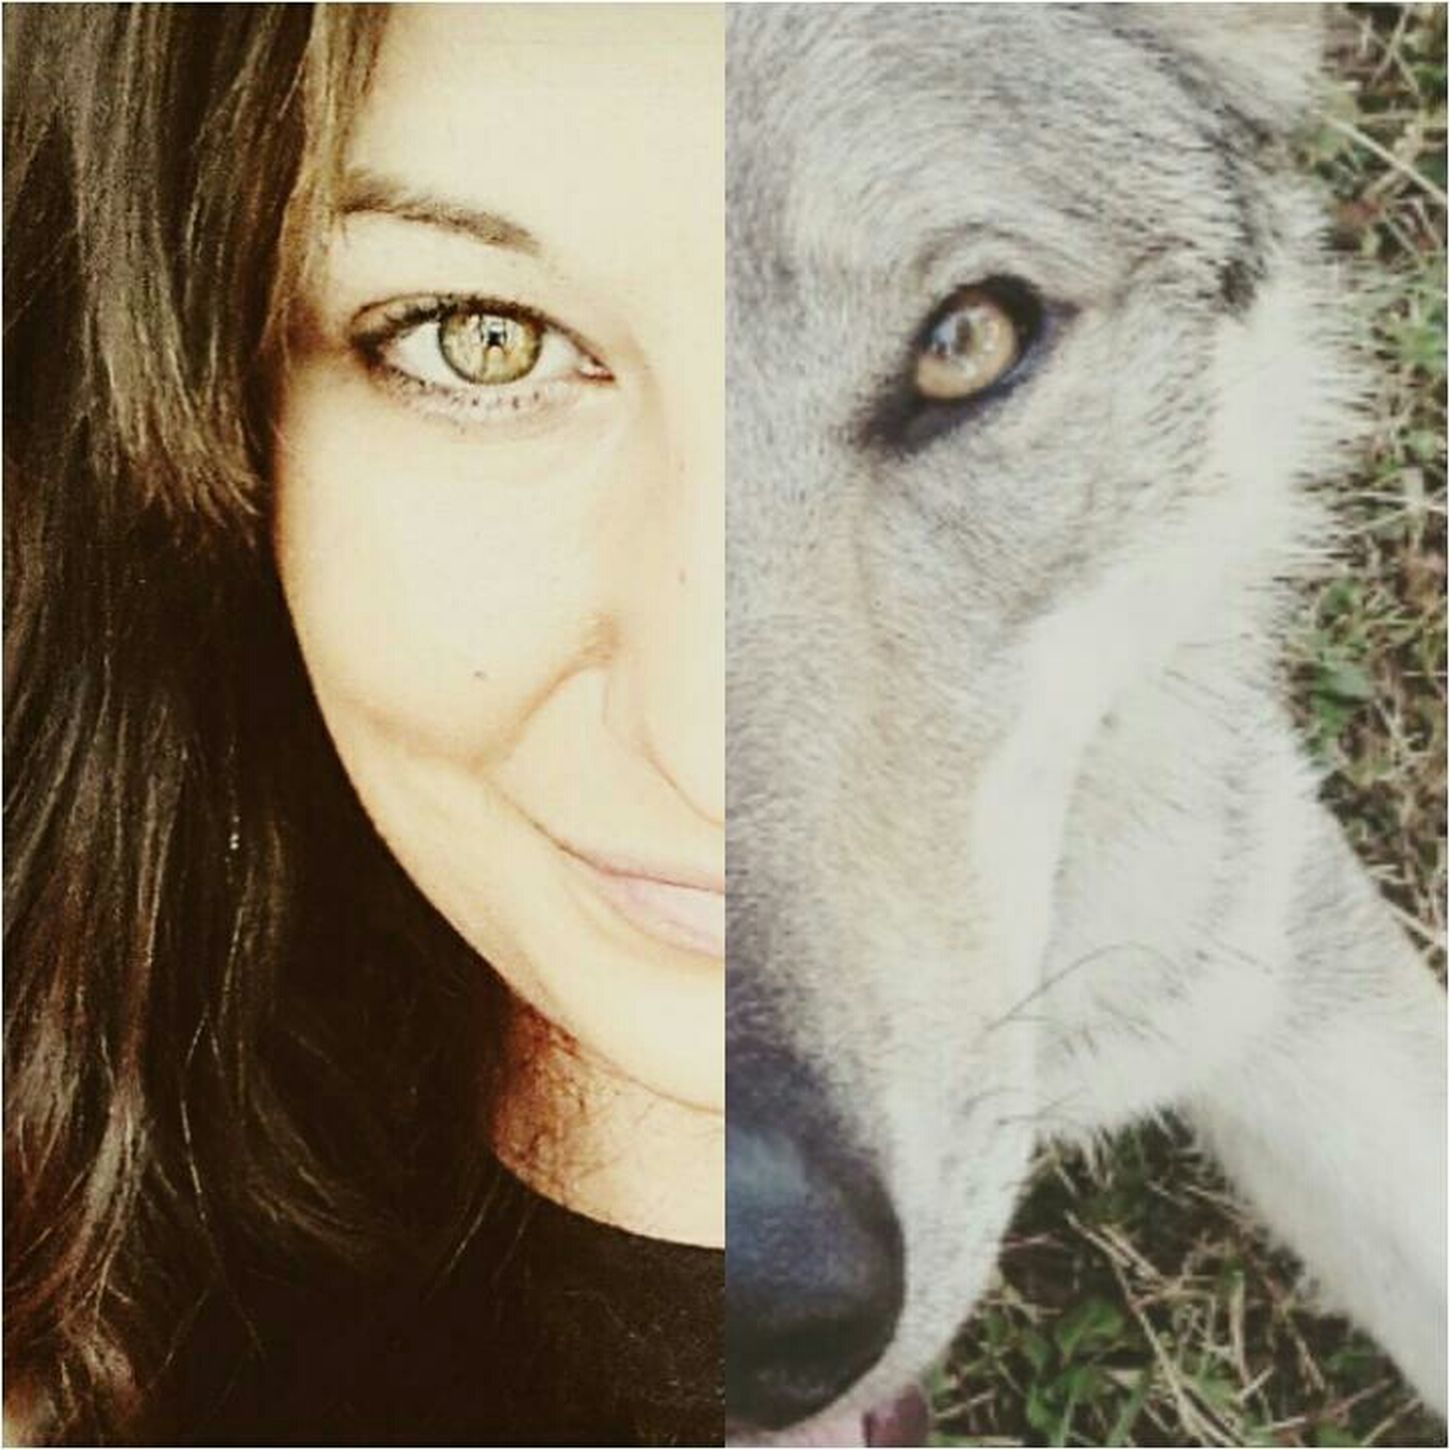 That's Me Cheese! Hello World Cechoslovakianwolfdog Canelupocecoslovacco Lupocecoslovacco Athenawolfdog Czechwolfdog Enjoying Life Eyes